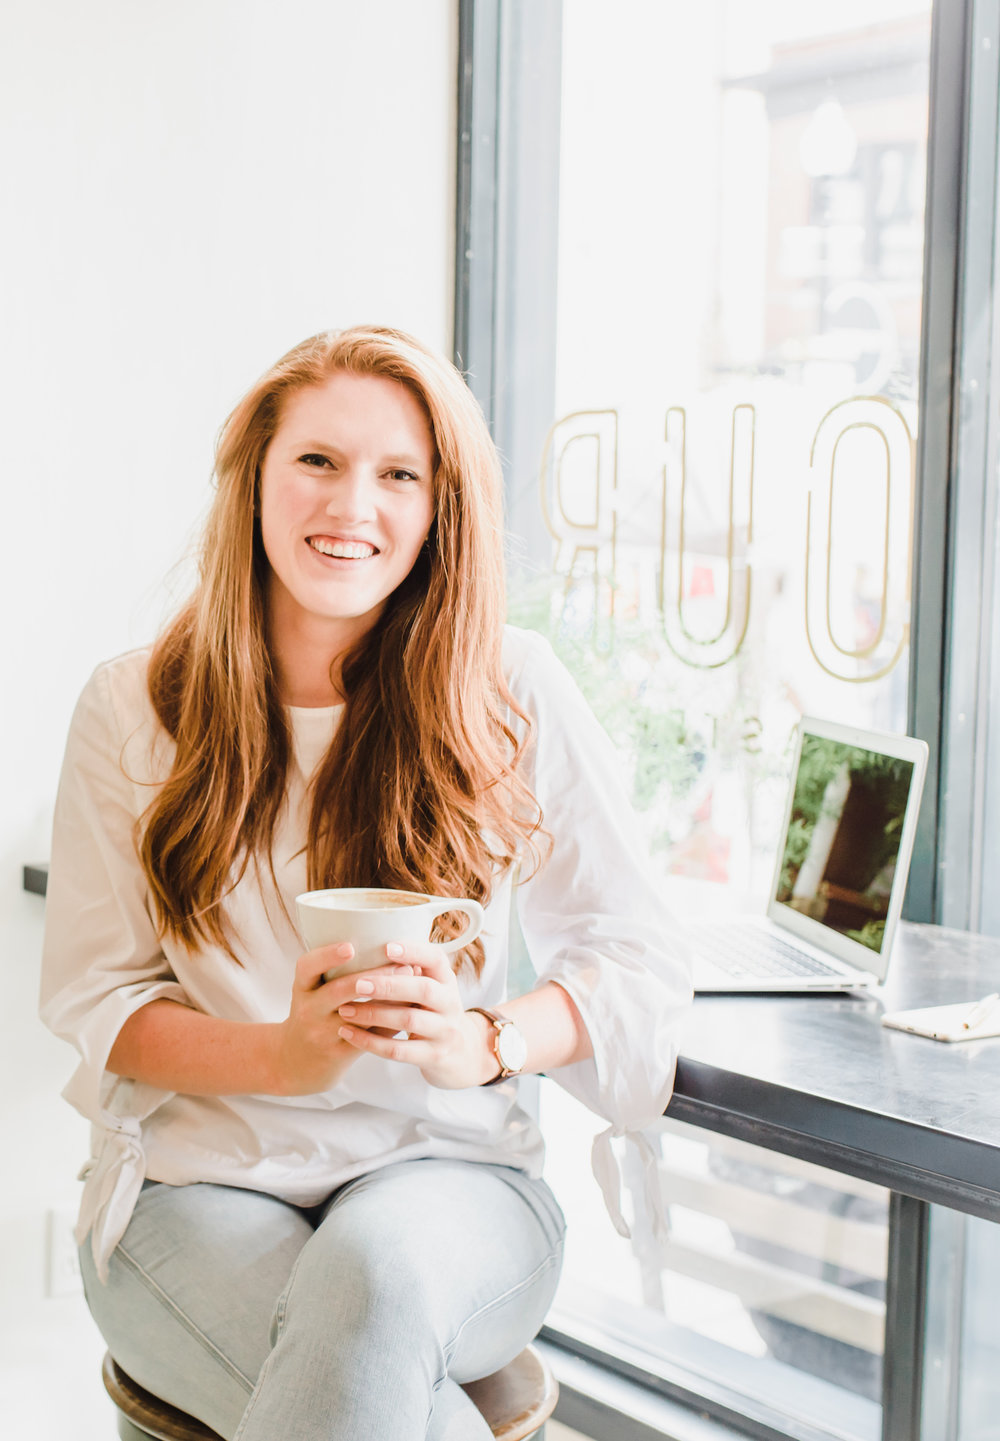 Paige Brunton in a cafe working on her squarespace business.jpg